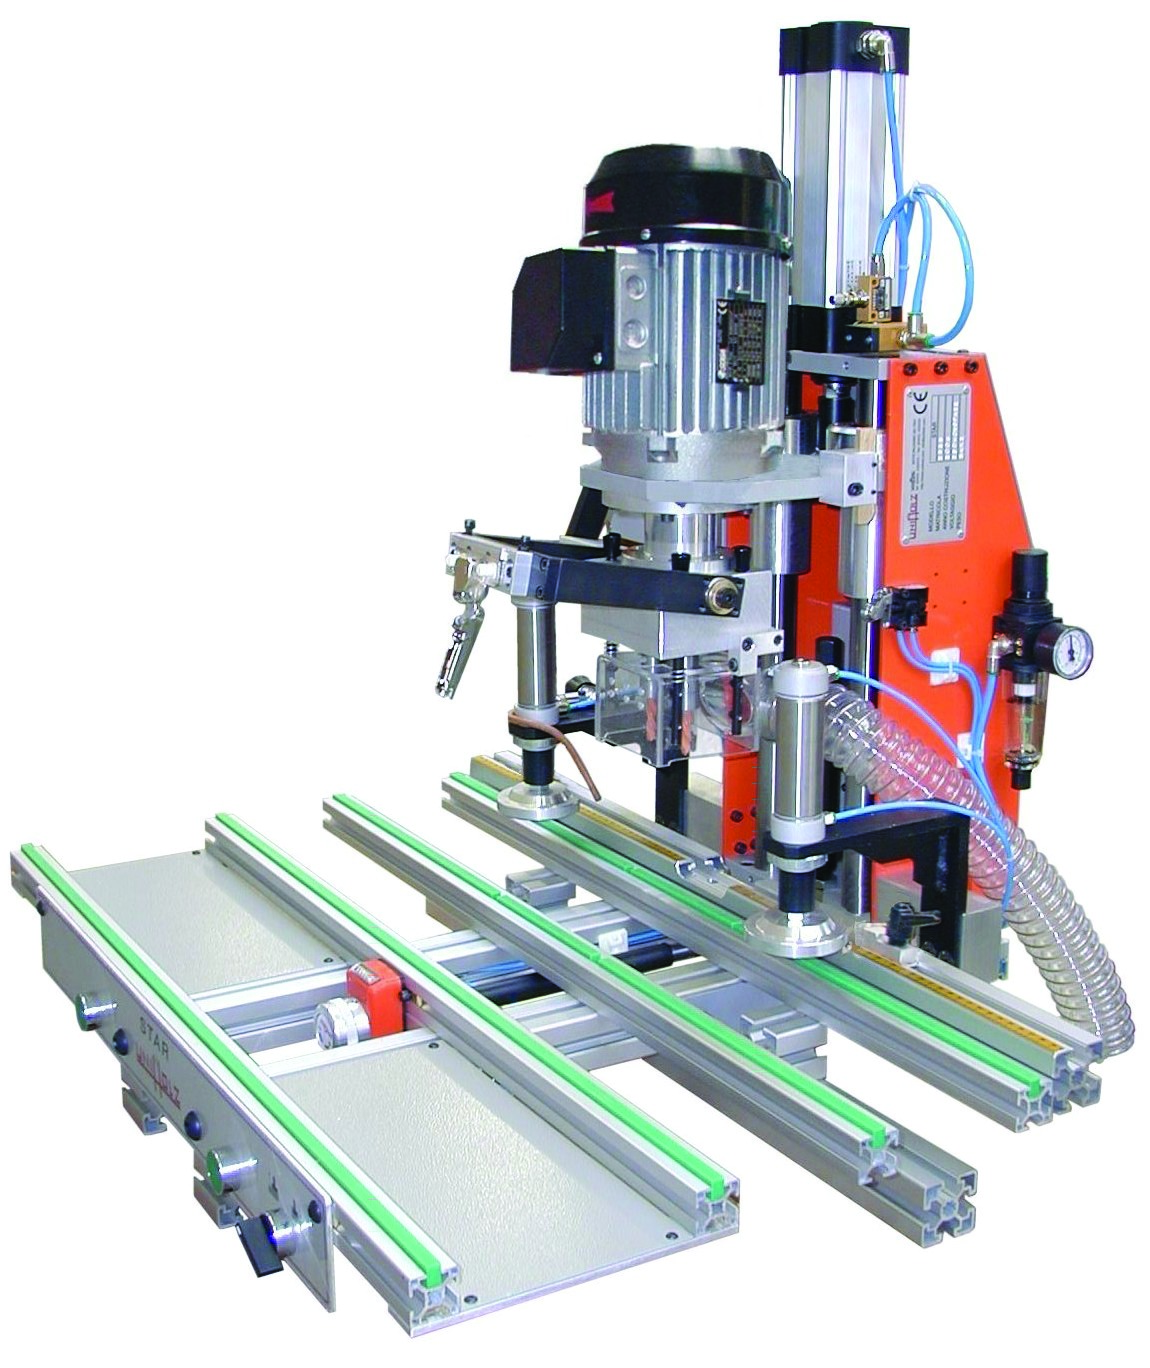 Hinge Boring Machine For Dtc 105 Dtc30 Marathon Hardware